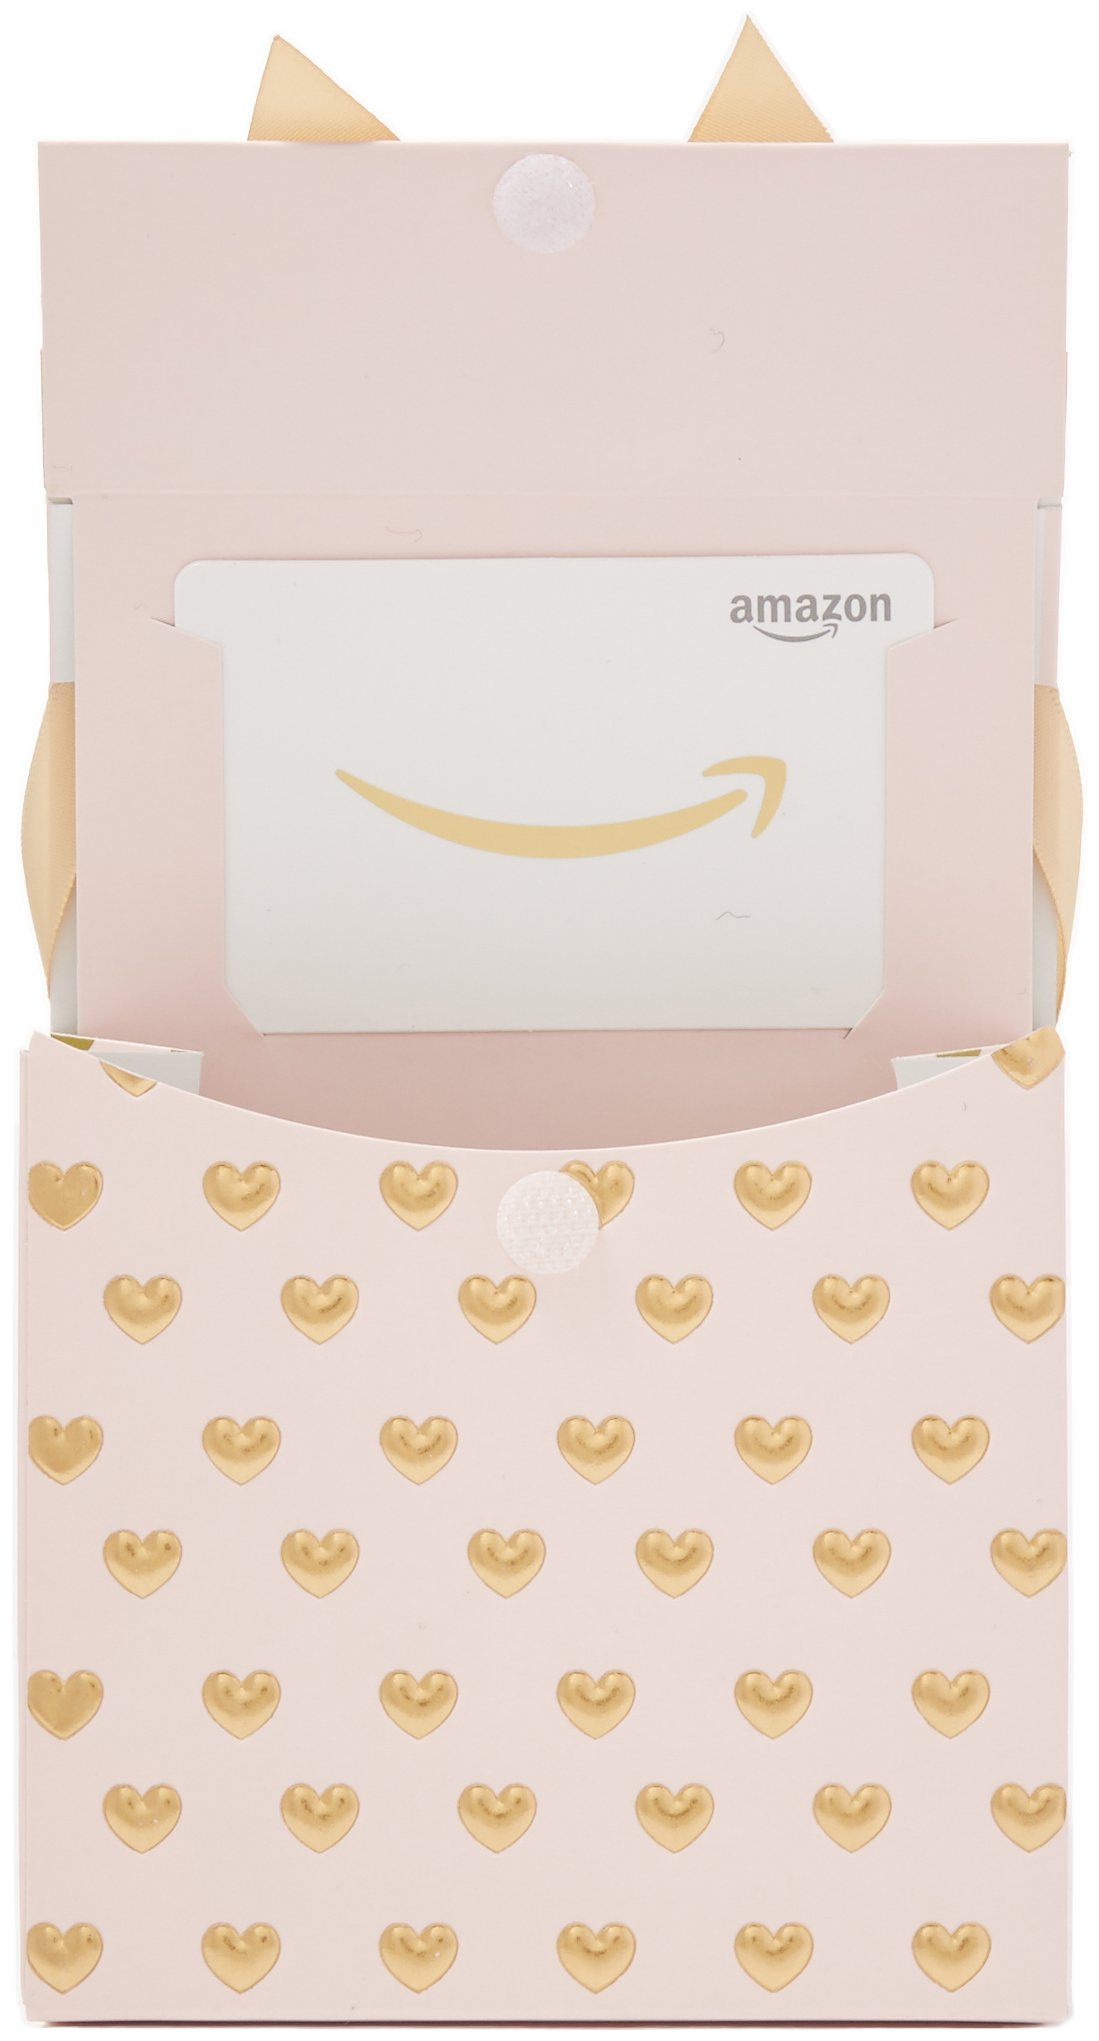 Amazon.com Gift Card in a Pink and Gold Gift Bag by Amazon (Image #3)